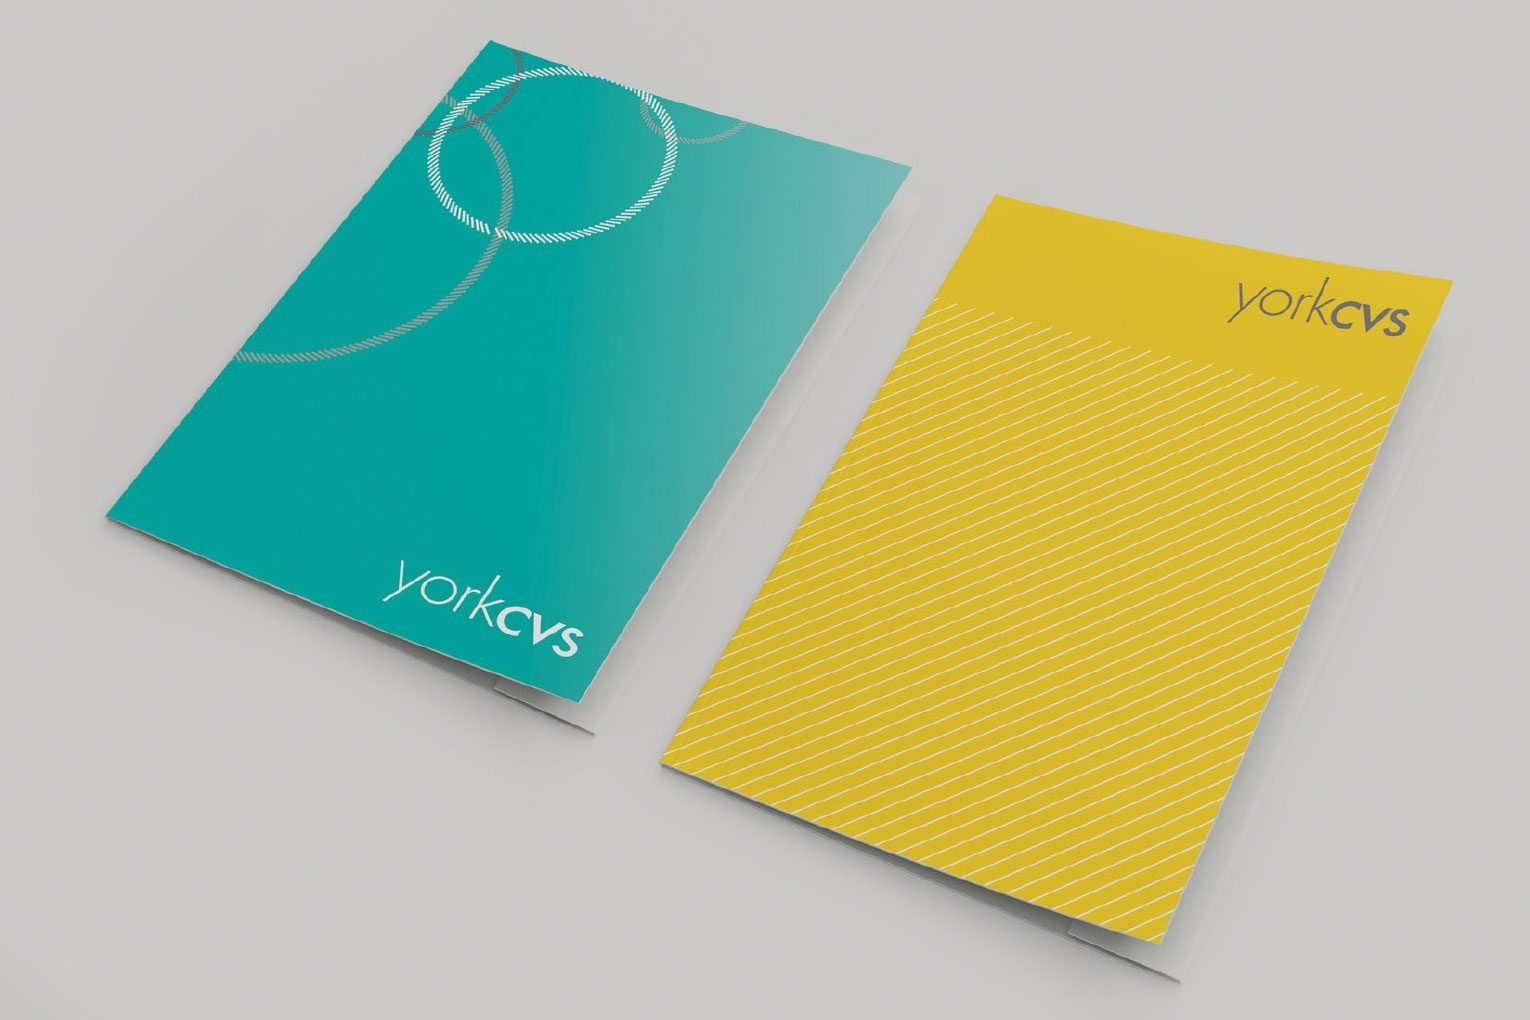 Changing brand perceptions pattern folders.